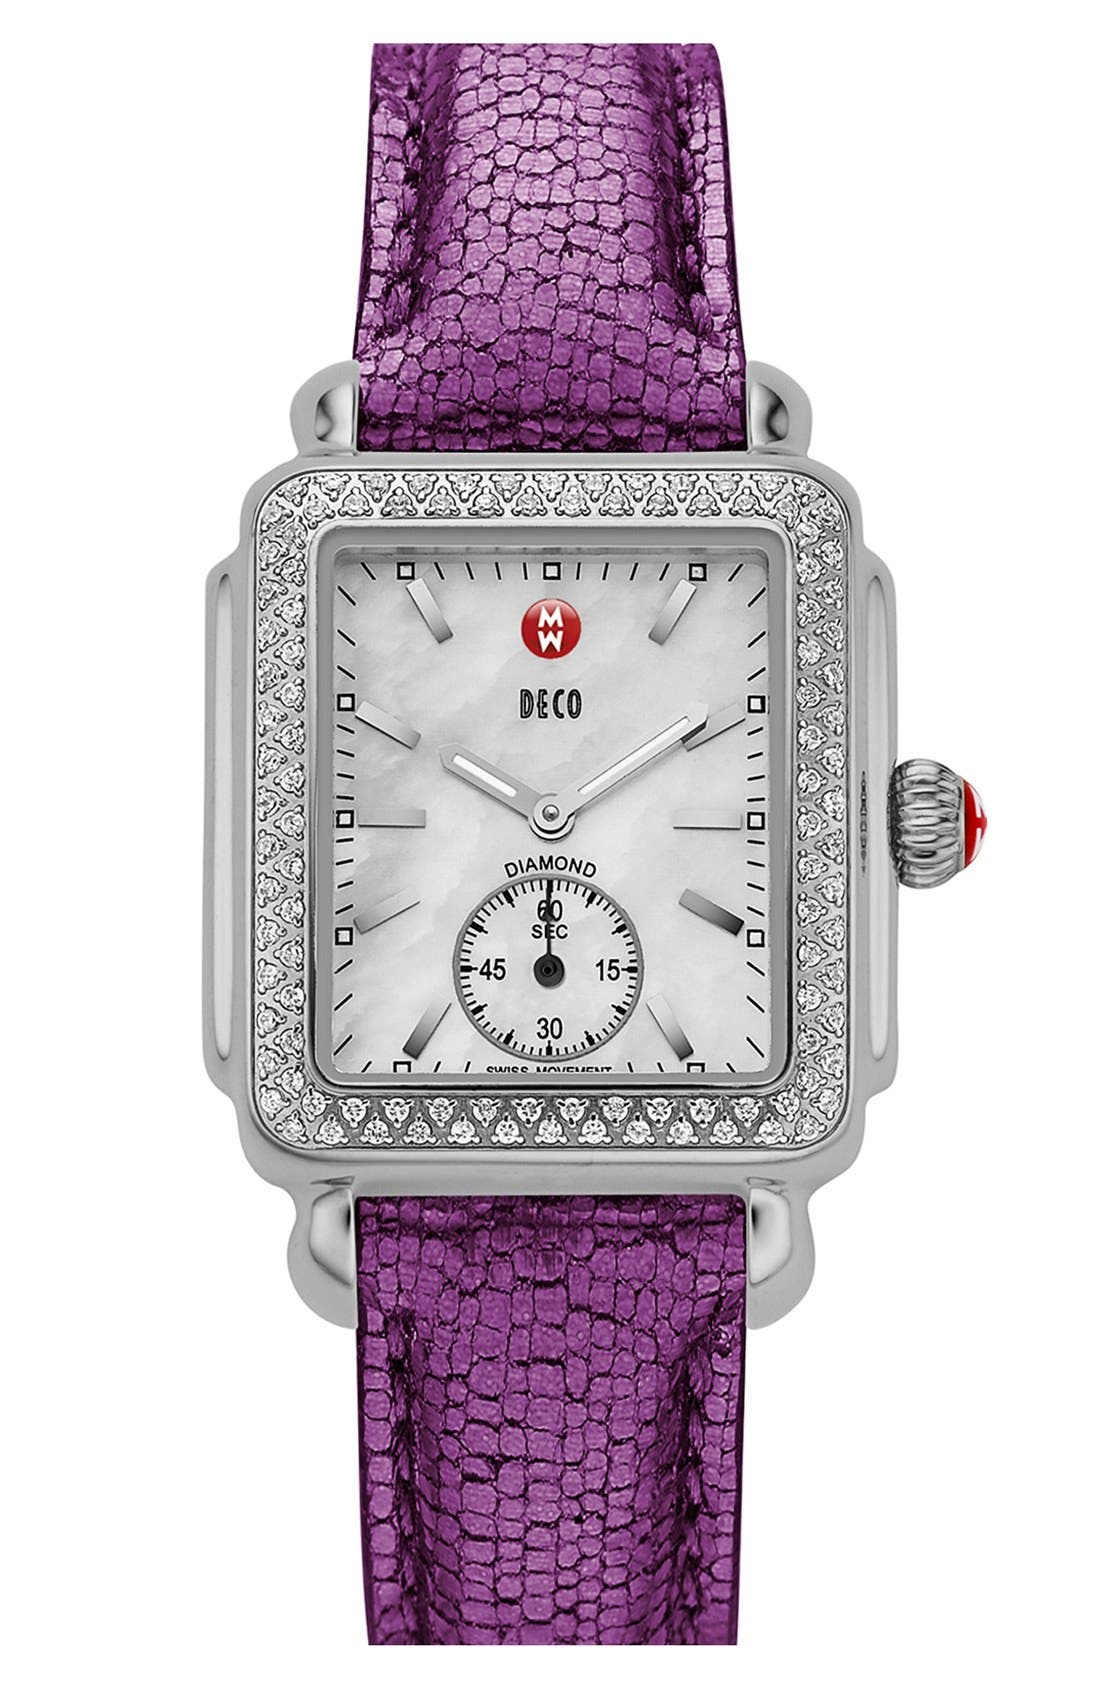 Deco 16 Diamond Watch Head, 29mm x 31mm,                             Alternate thumbnail 6, color,                             SILVER